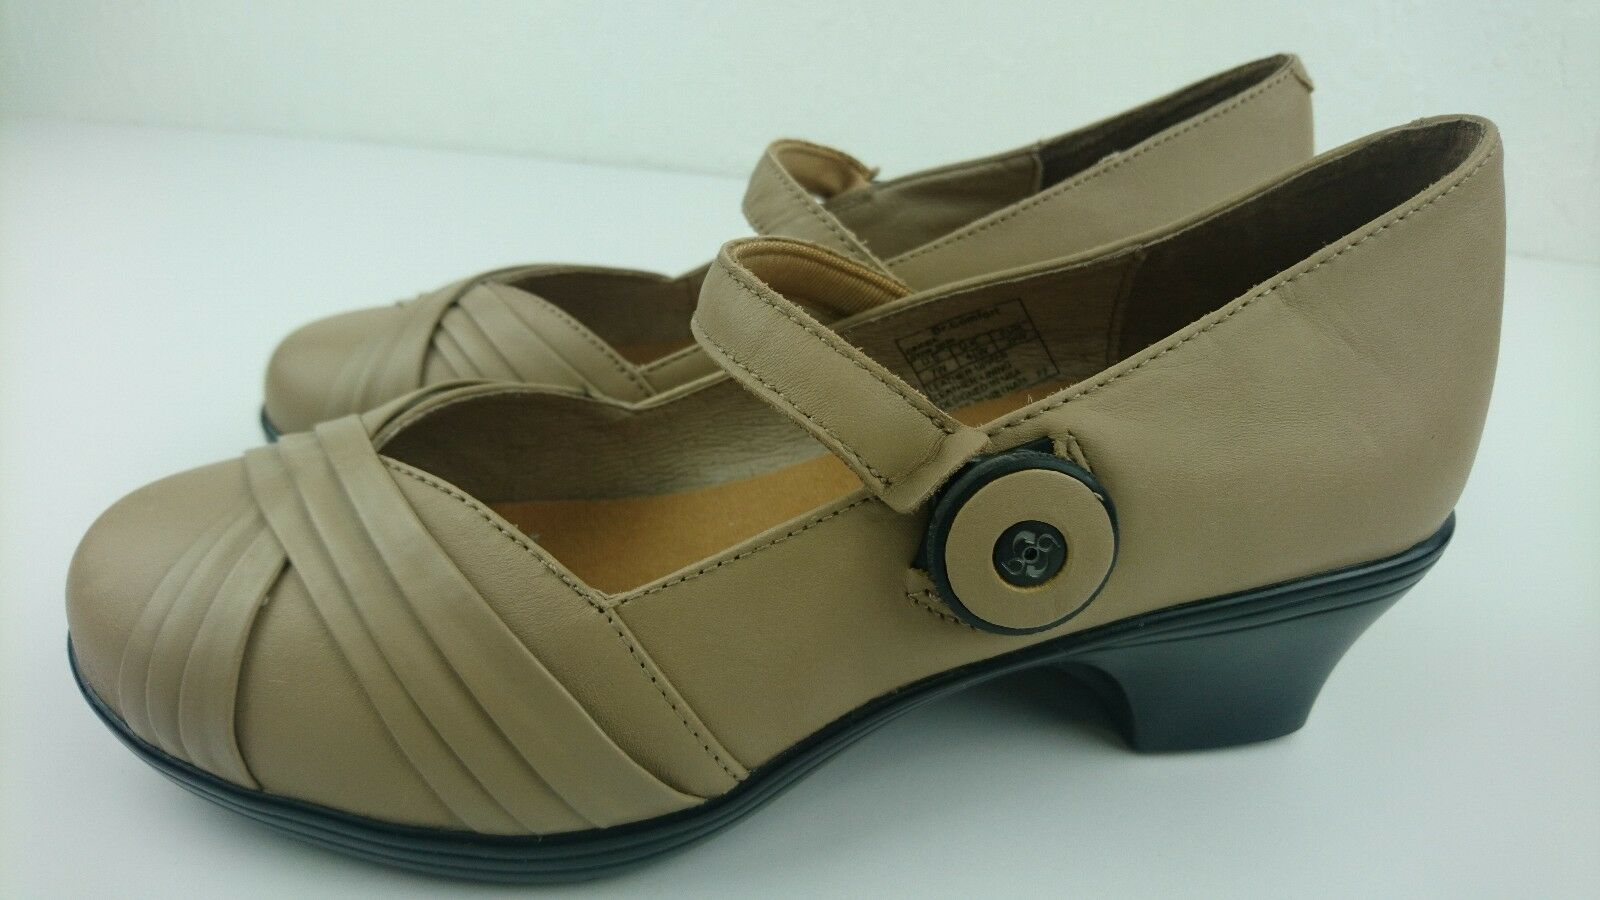 Dr Comfort Cindee 7 W Taupe Mary Jane Femmes Confort Orthopédique Boa sangle